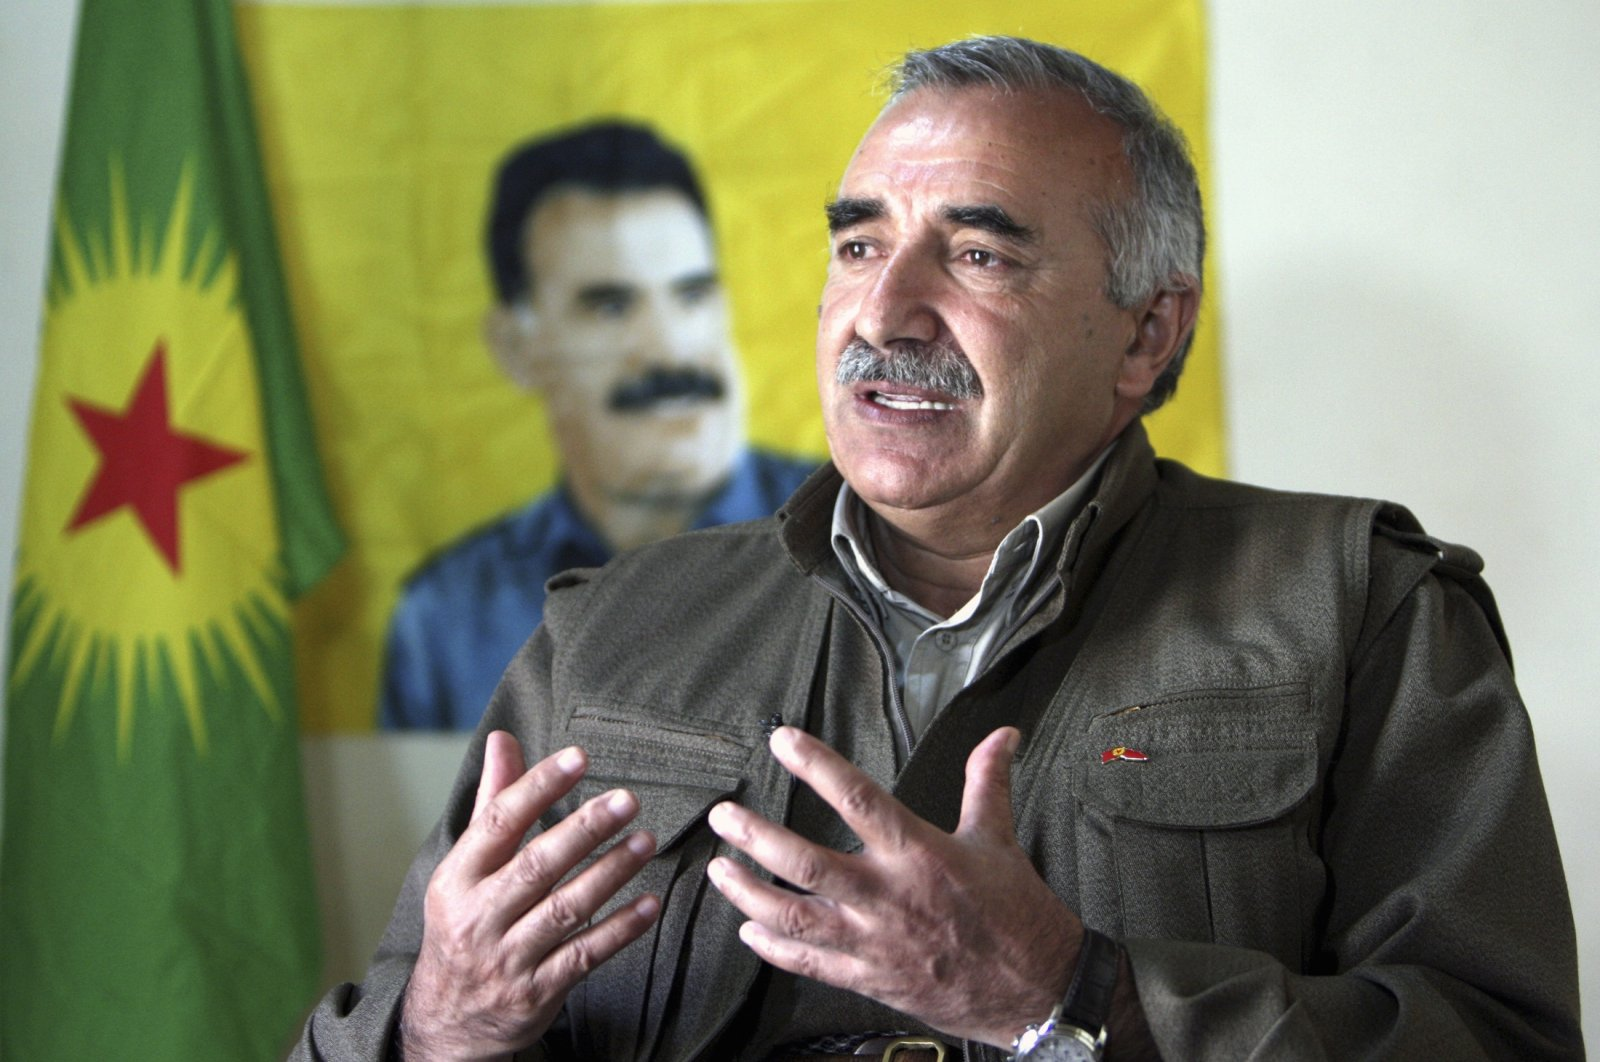 Murat Karayılan, acting leader of the PKK terrorist group, speaks during an interview with Reuters in the Qandil mountains near the Iraq-Turkish border, 330 kilometers (205 miles) northeast of Baghdad in Sulaymaniyah, Iraq, March 24, 2013. (Reuters Photo)